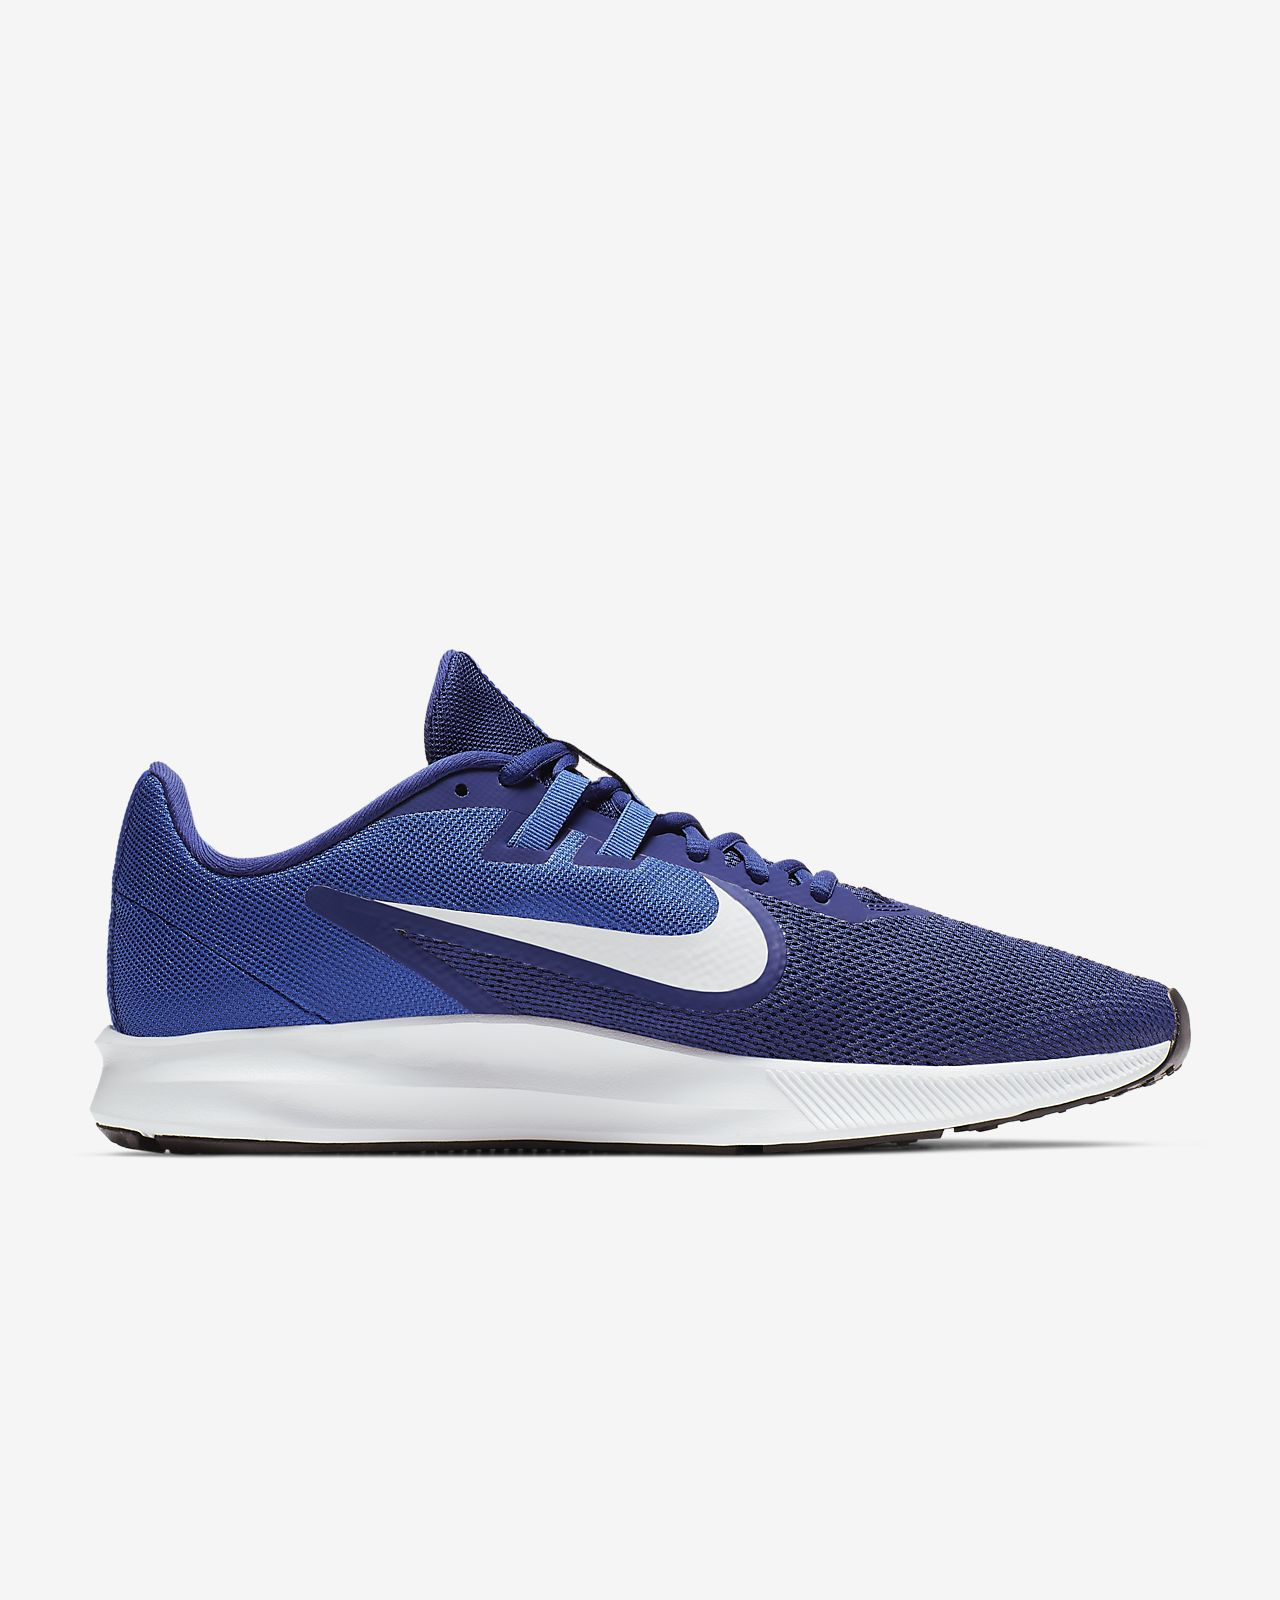 Mænd Nike Performance FREE RUN 2 Løbesko deep royal blue